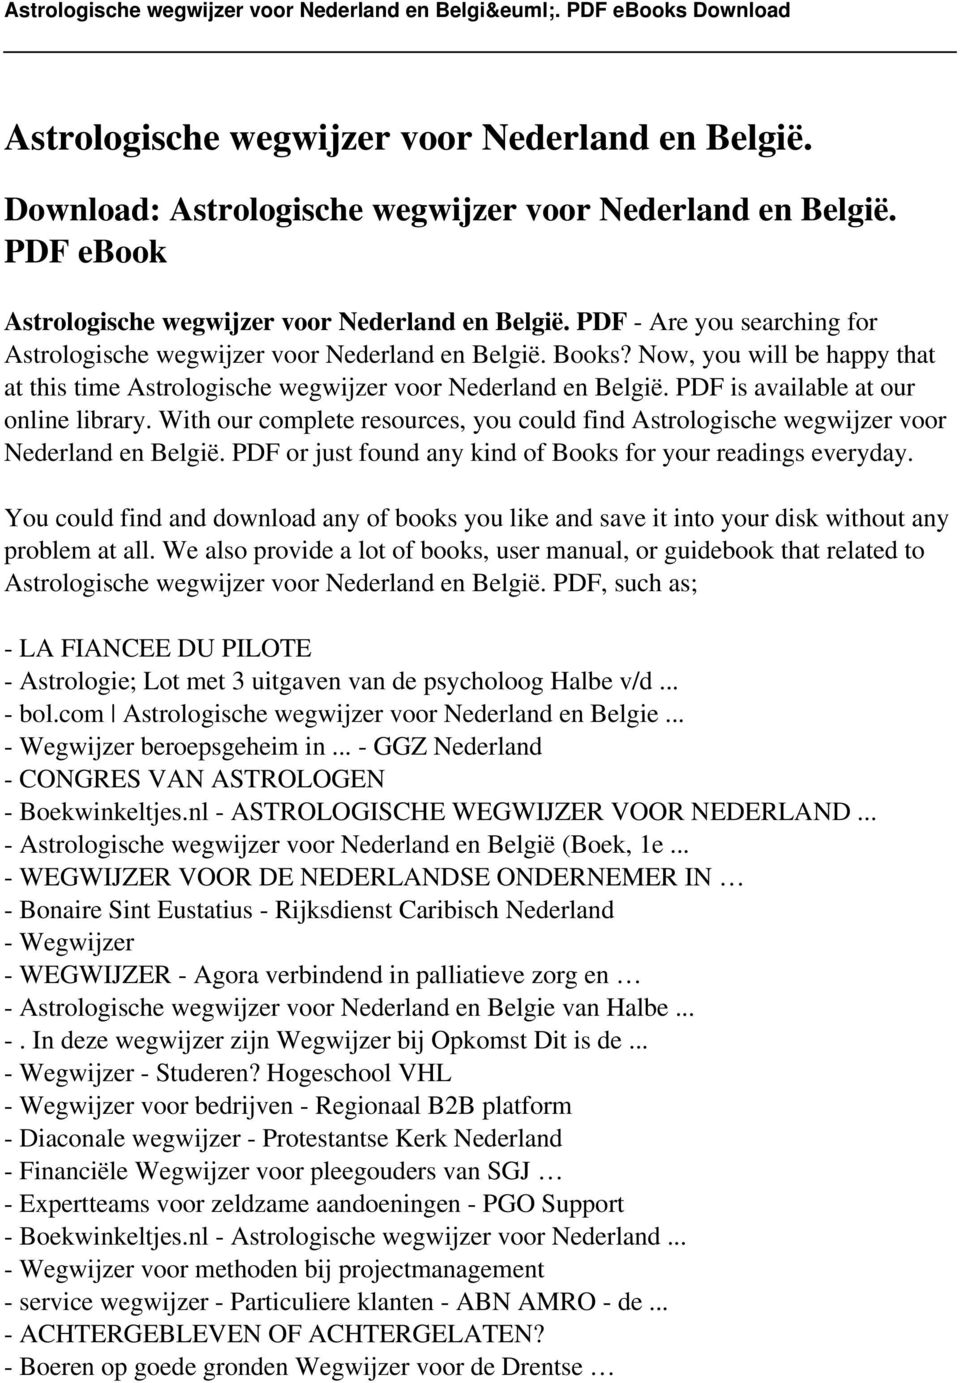 PDF is available at our online library. With our complete resources, you could find Astrologische wegwijzer voor Nederland en België. PDF or just found any kind of Books for your readings everyday.